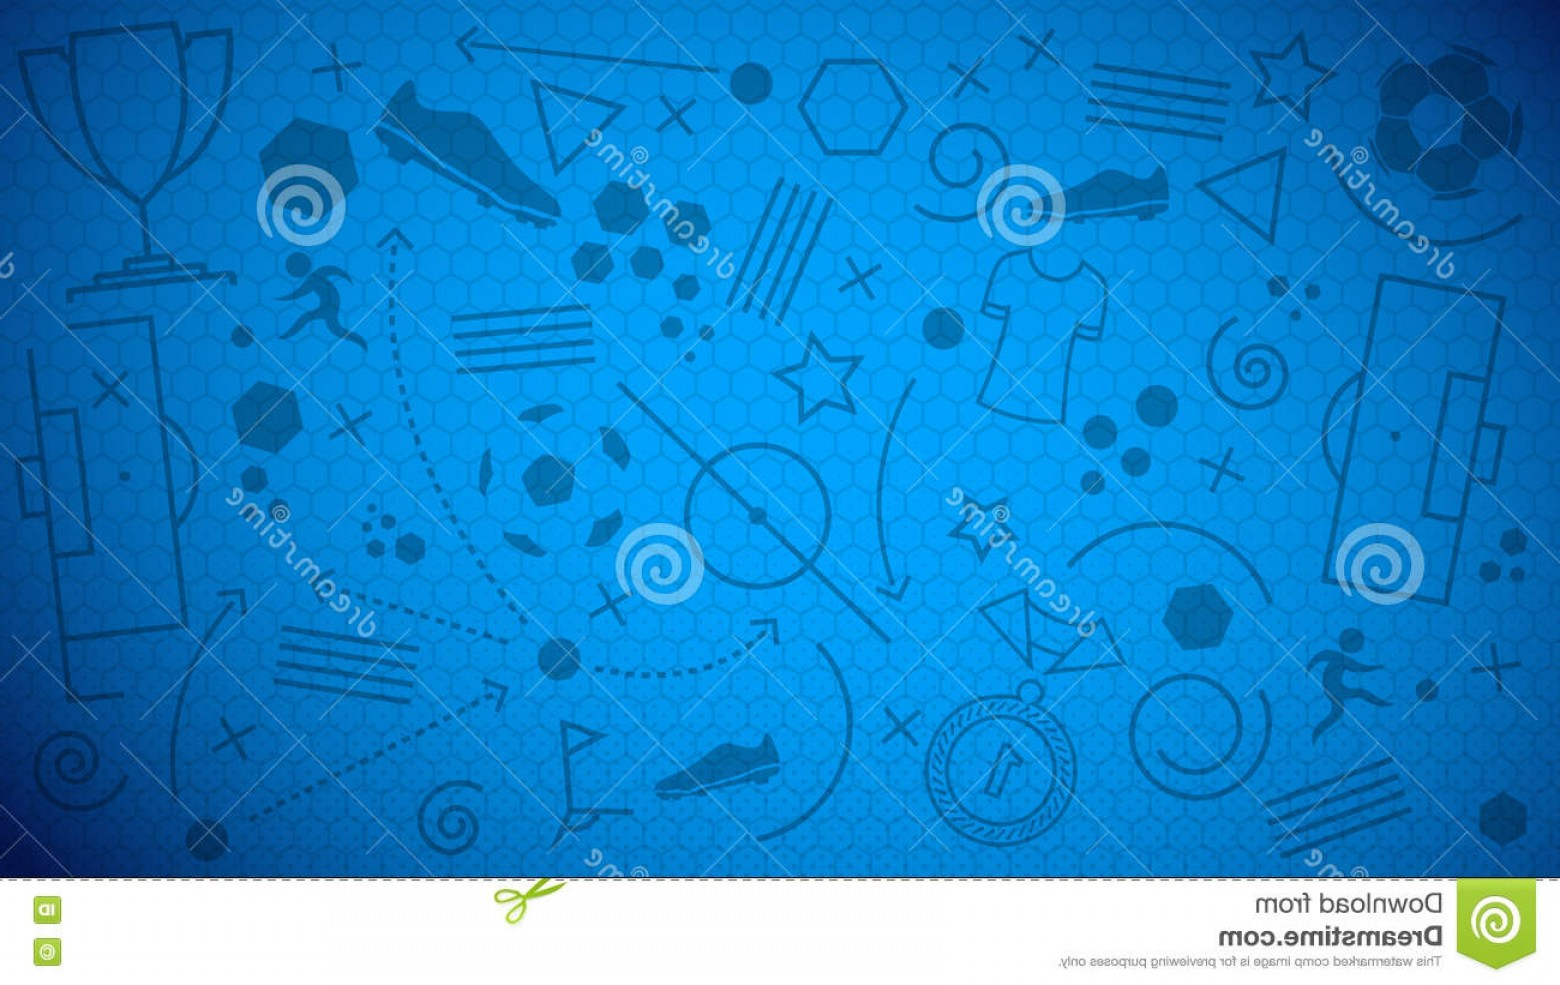 Soccer Blue Background Vector Graphics: Stock Illustration Football Championship Background Vector Illustration Abstract Blue Soccer Different Icons Seamless Image